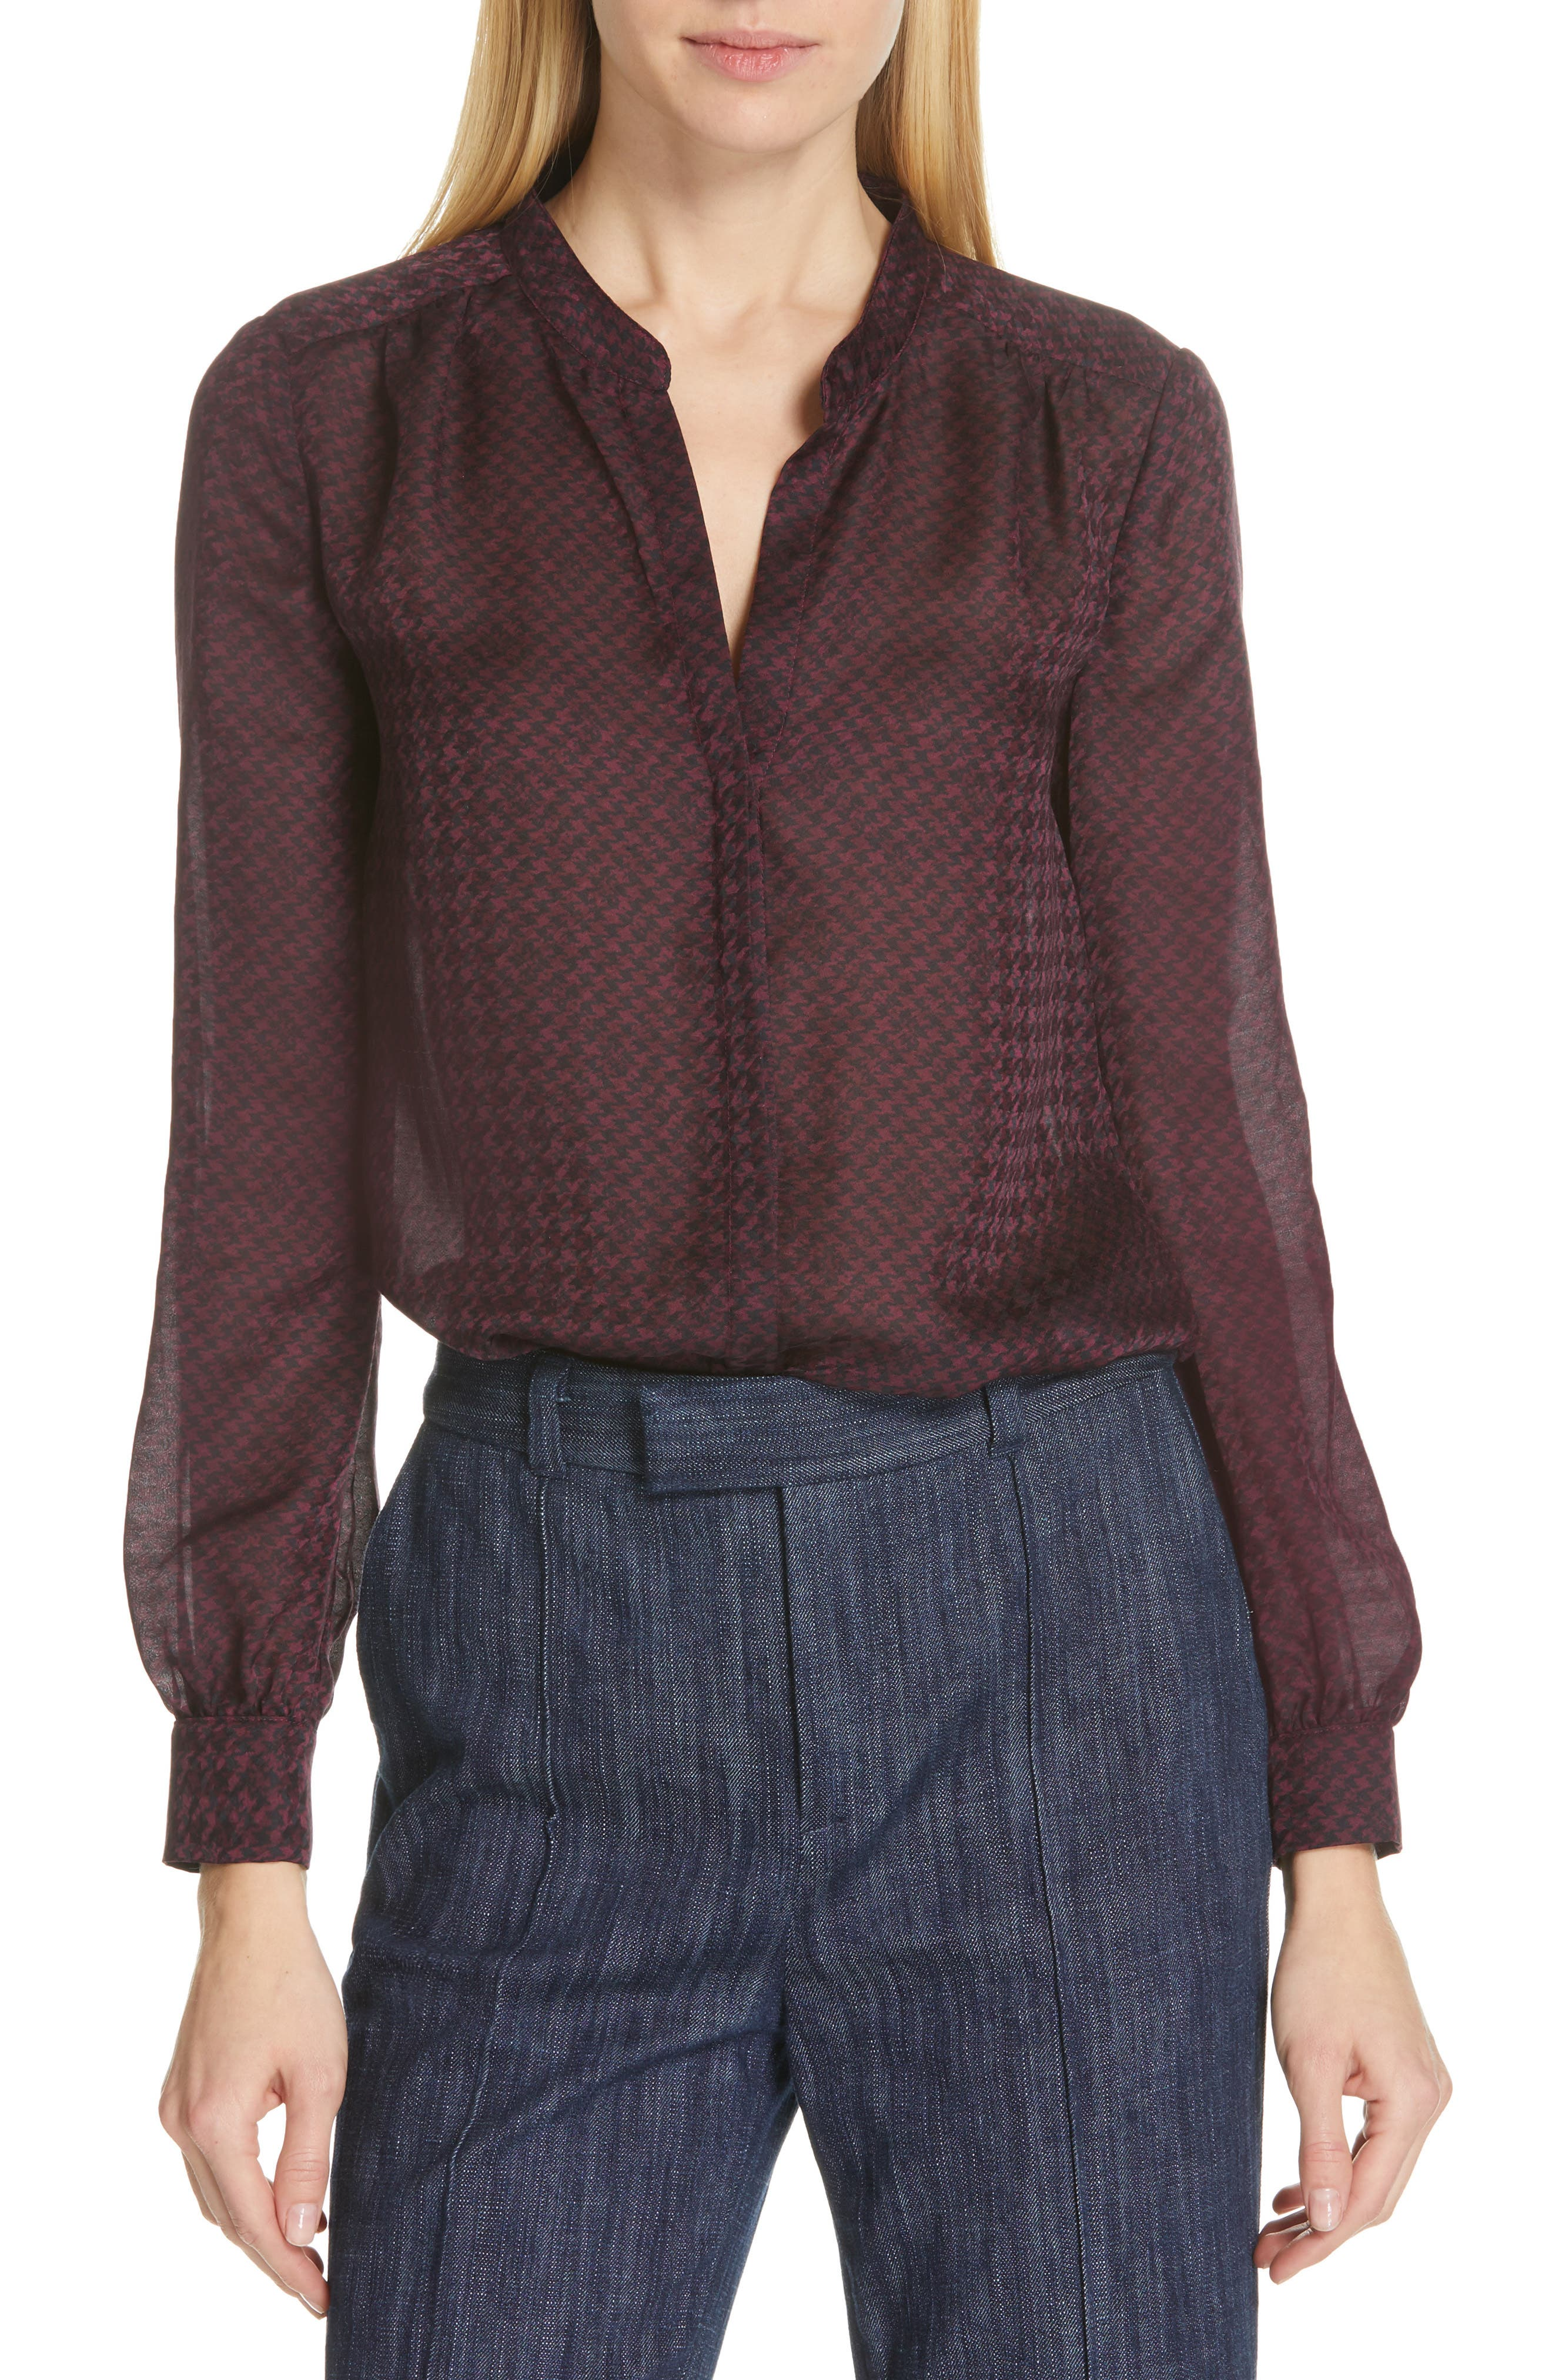 JOIE, Mintee Houndstooth Check Blouse, Main thumbnail 1, color, 501